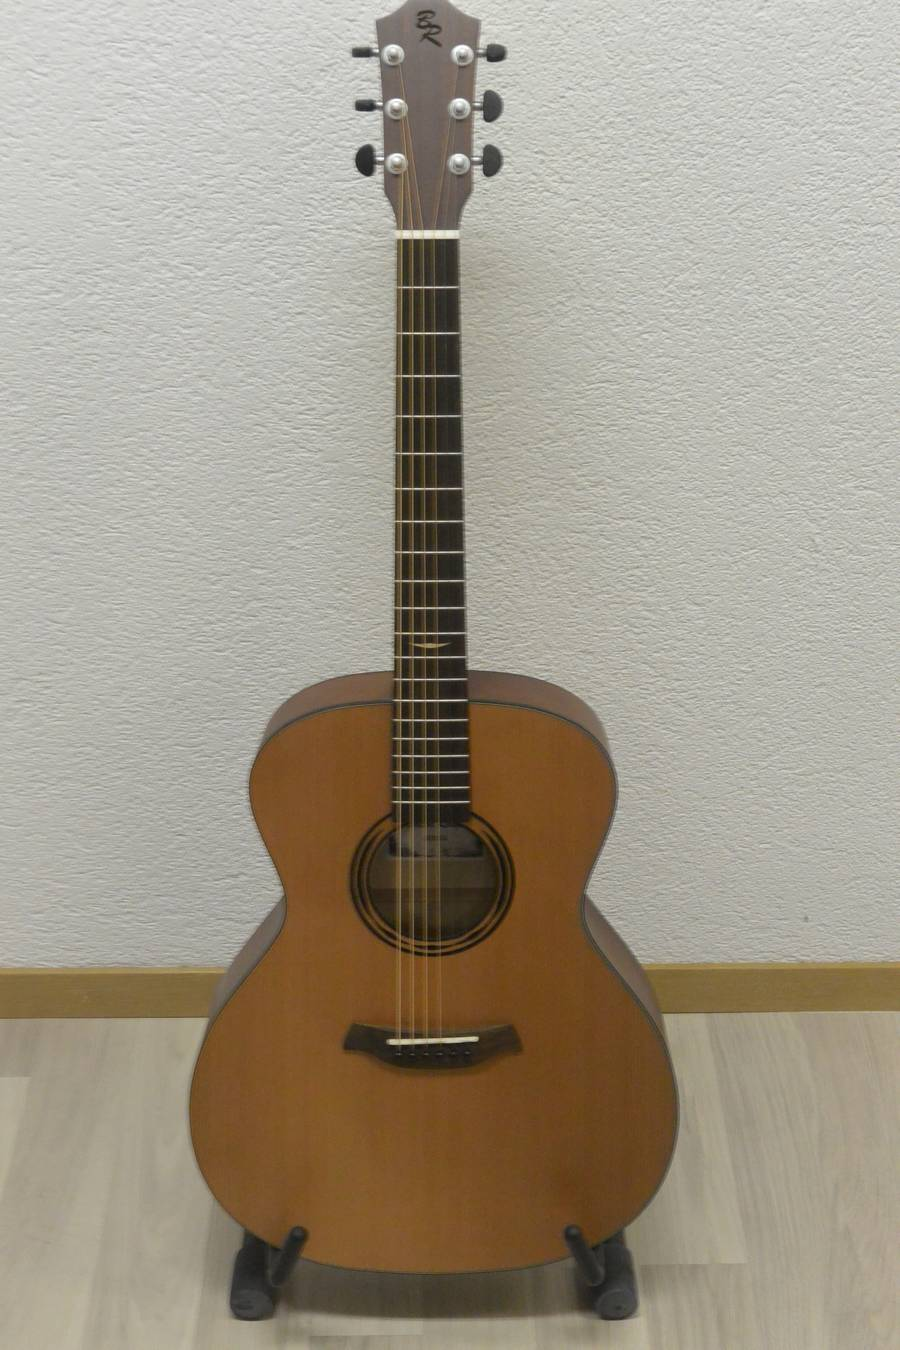 guitare acoustique baton rouge AR21C frs 315.00